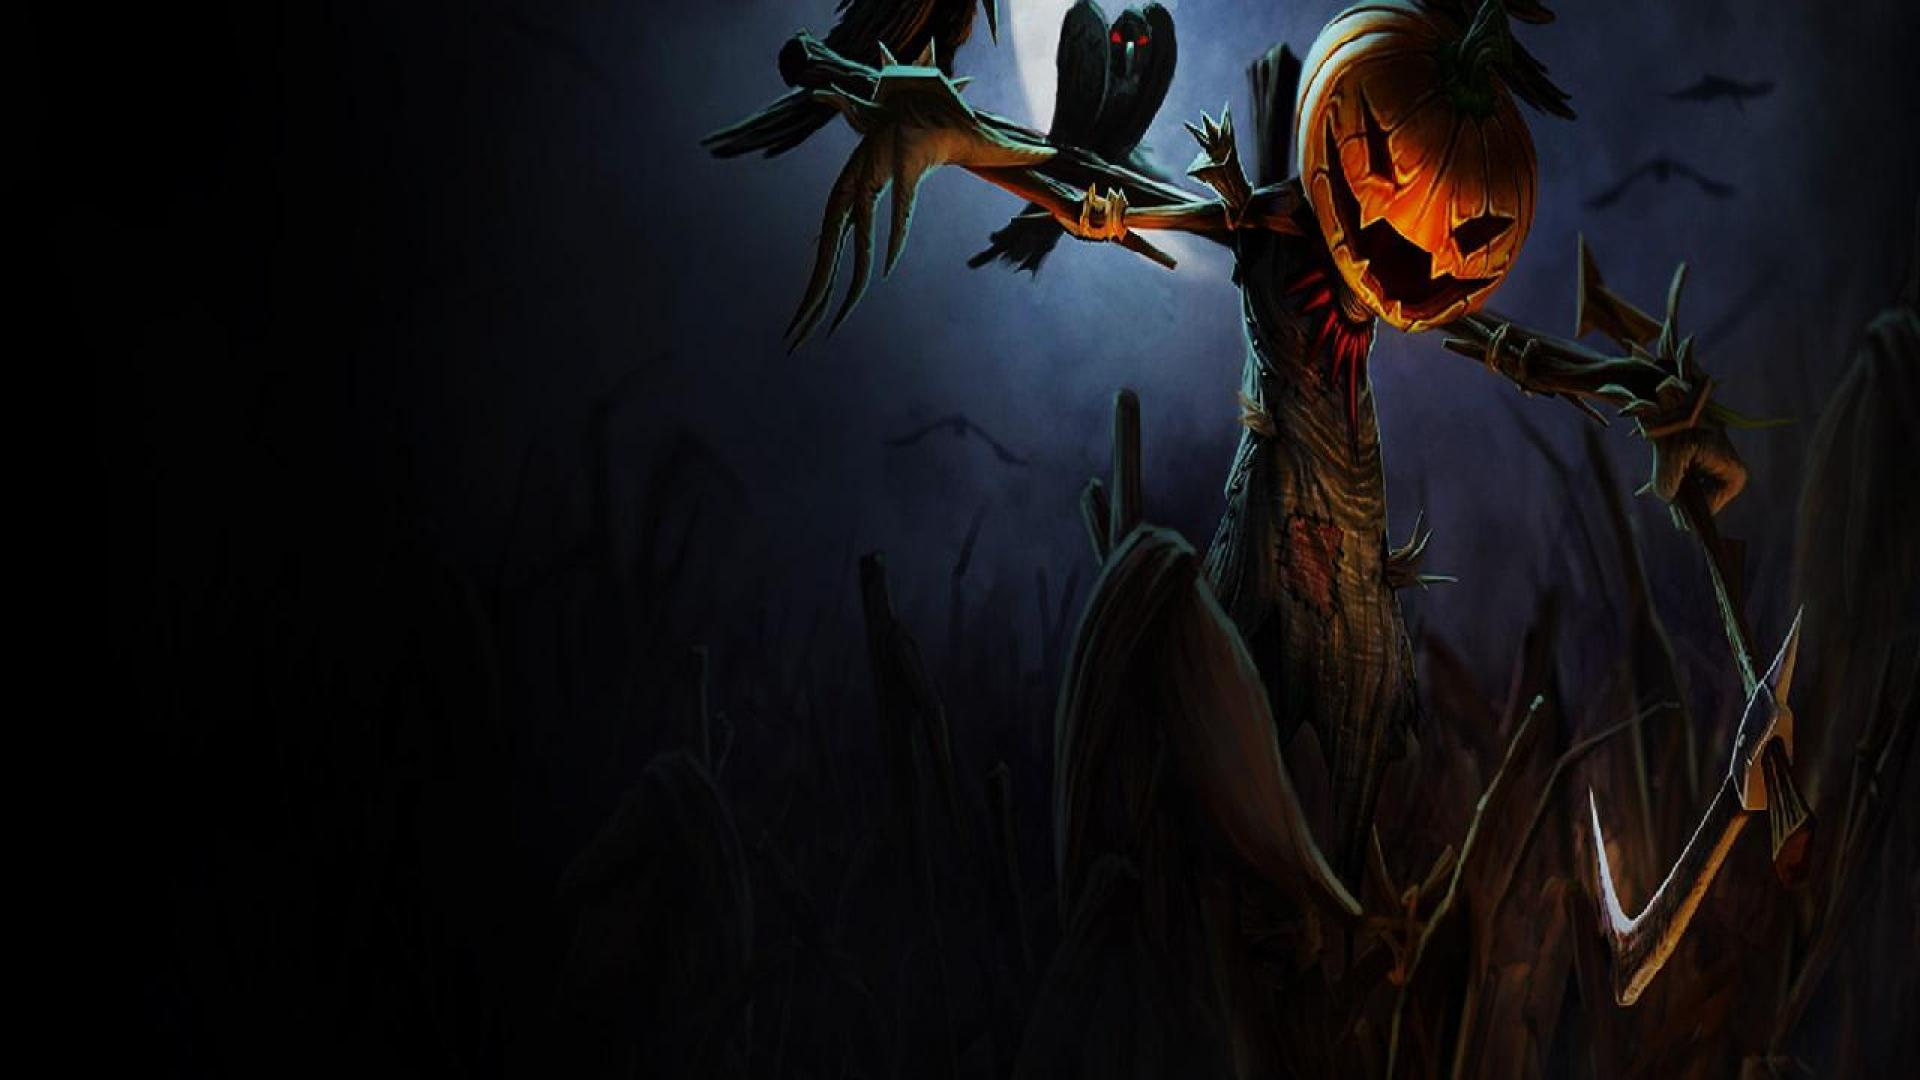 Scarecrow Coming To Life Wallpaper Hd Wallpapers 1920x1080px